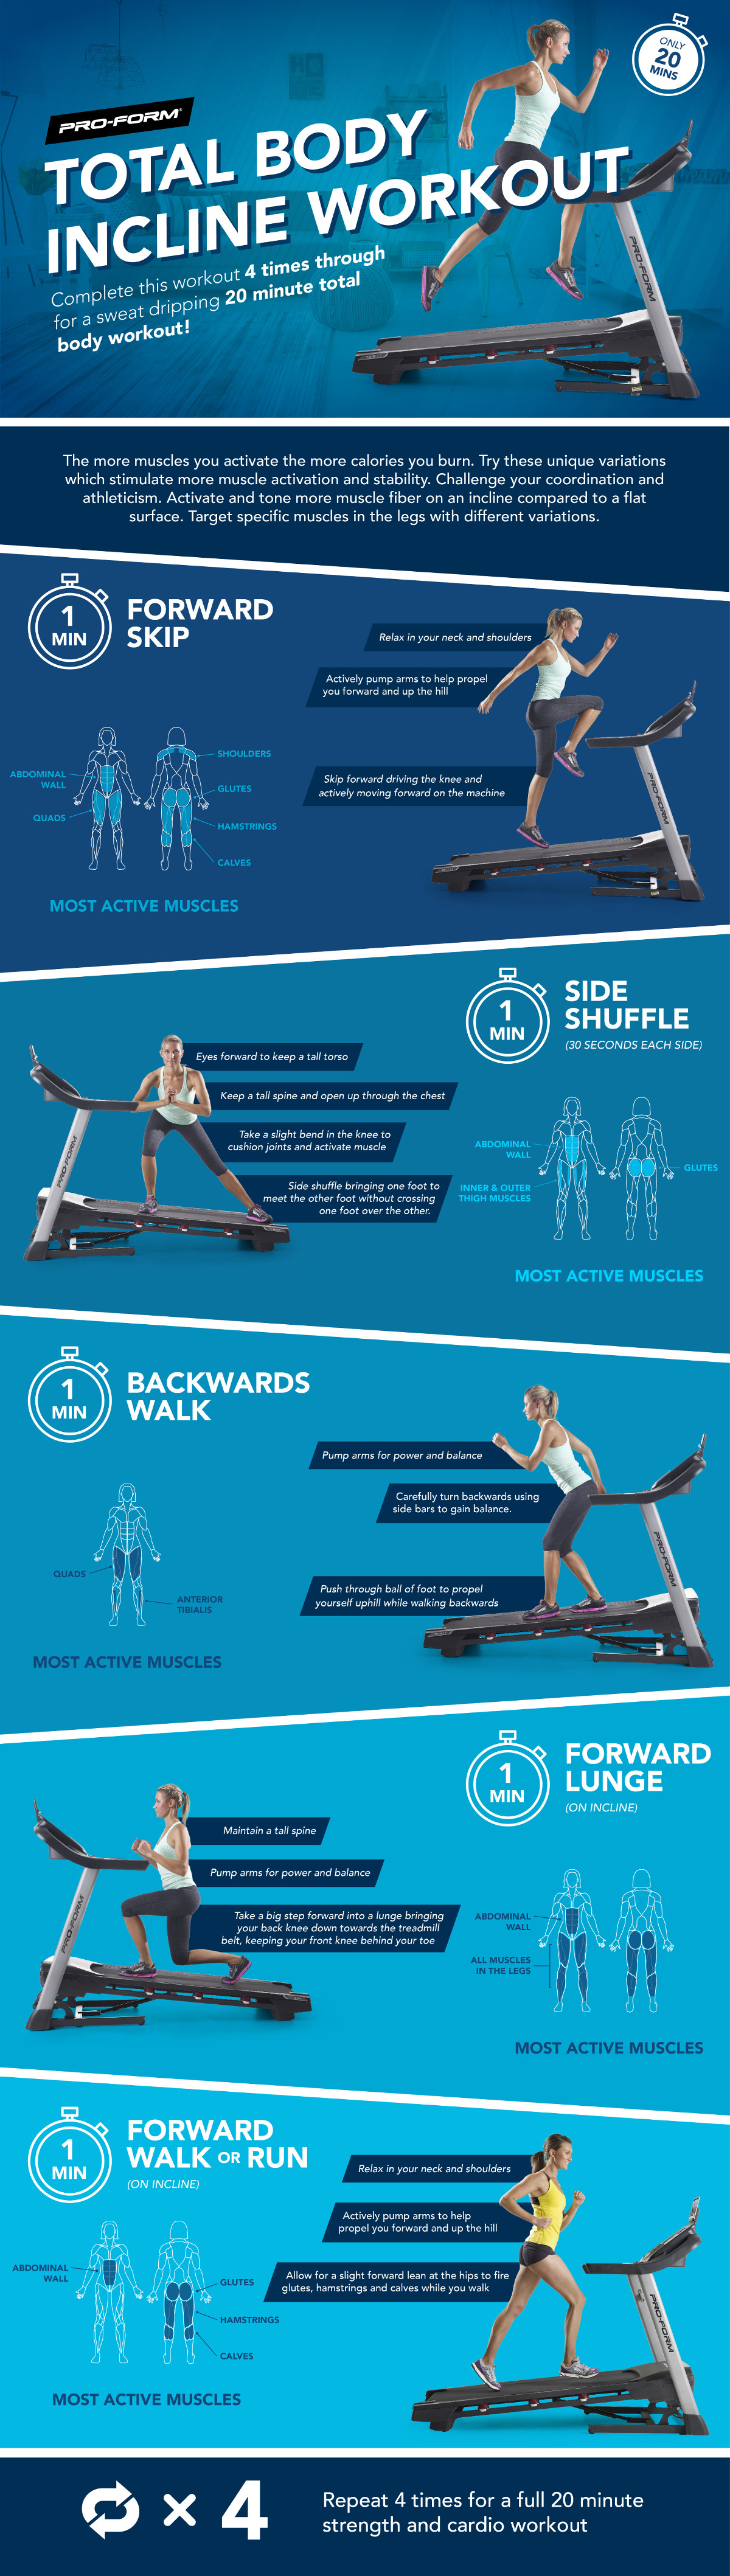 Total Body Incline Workout – ProForm